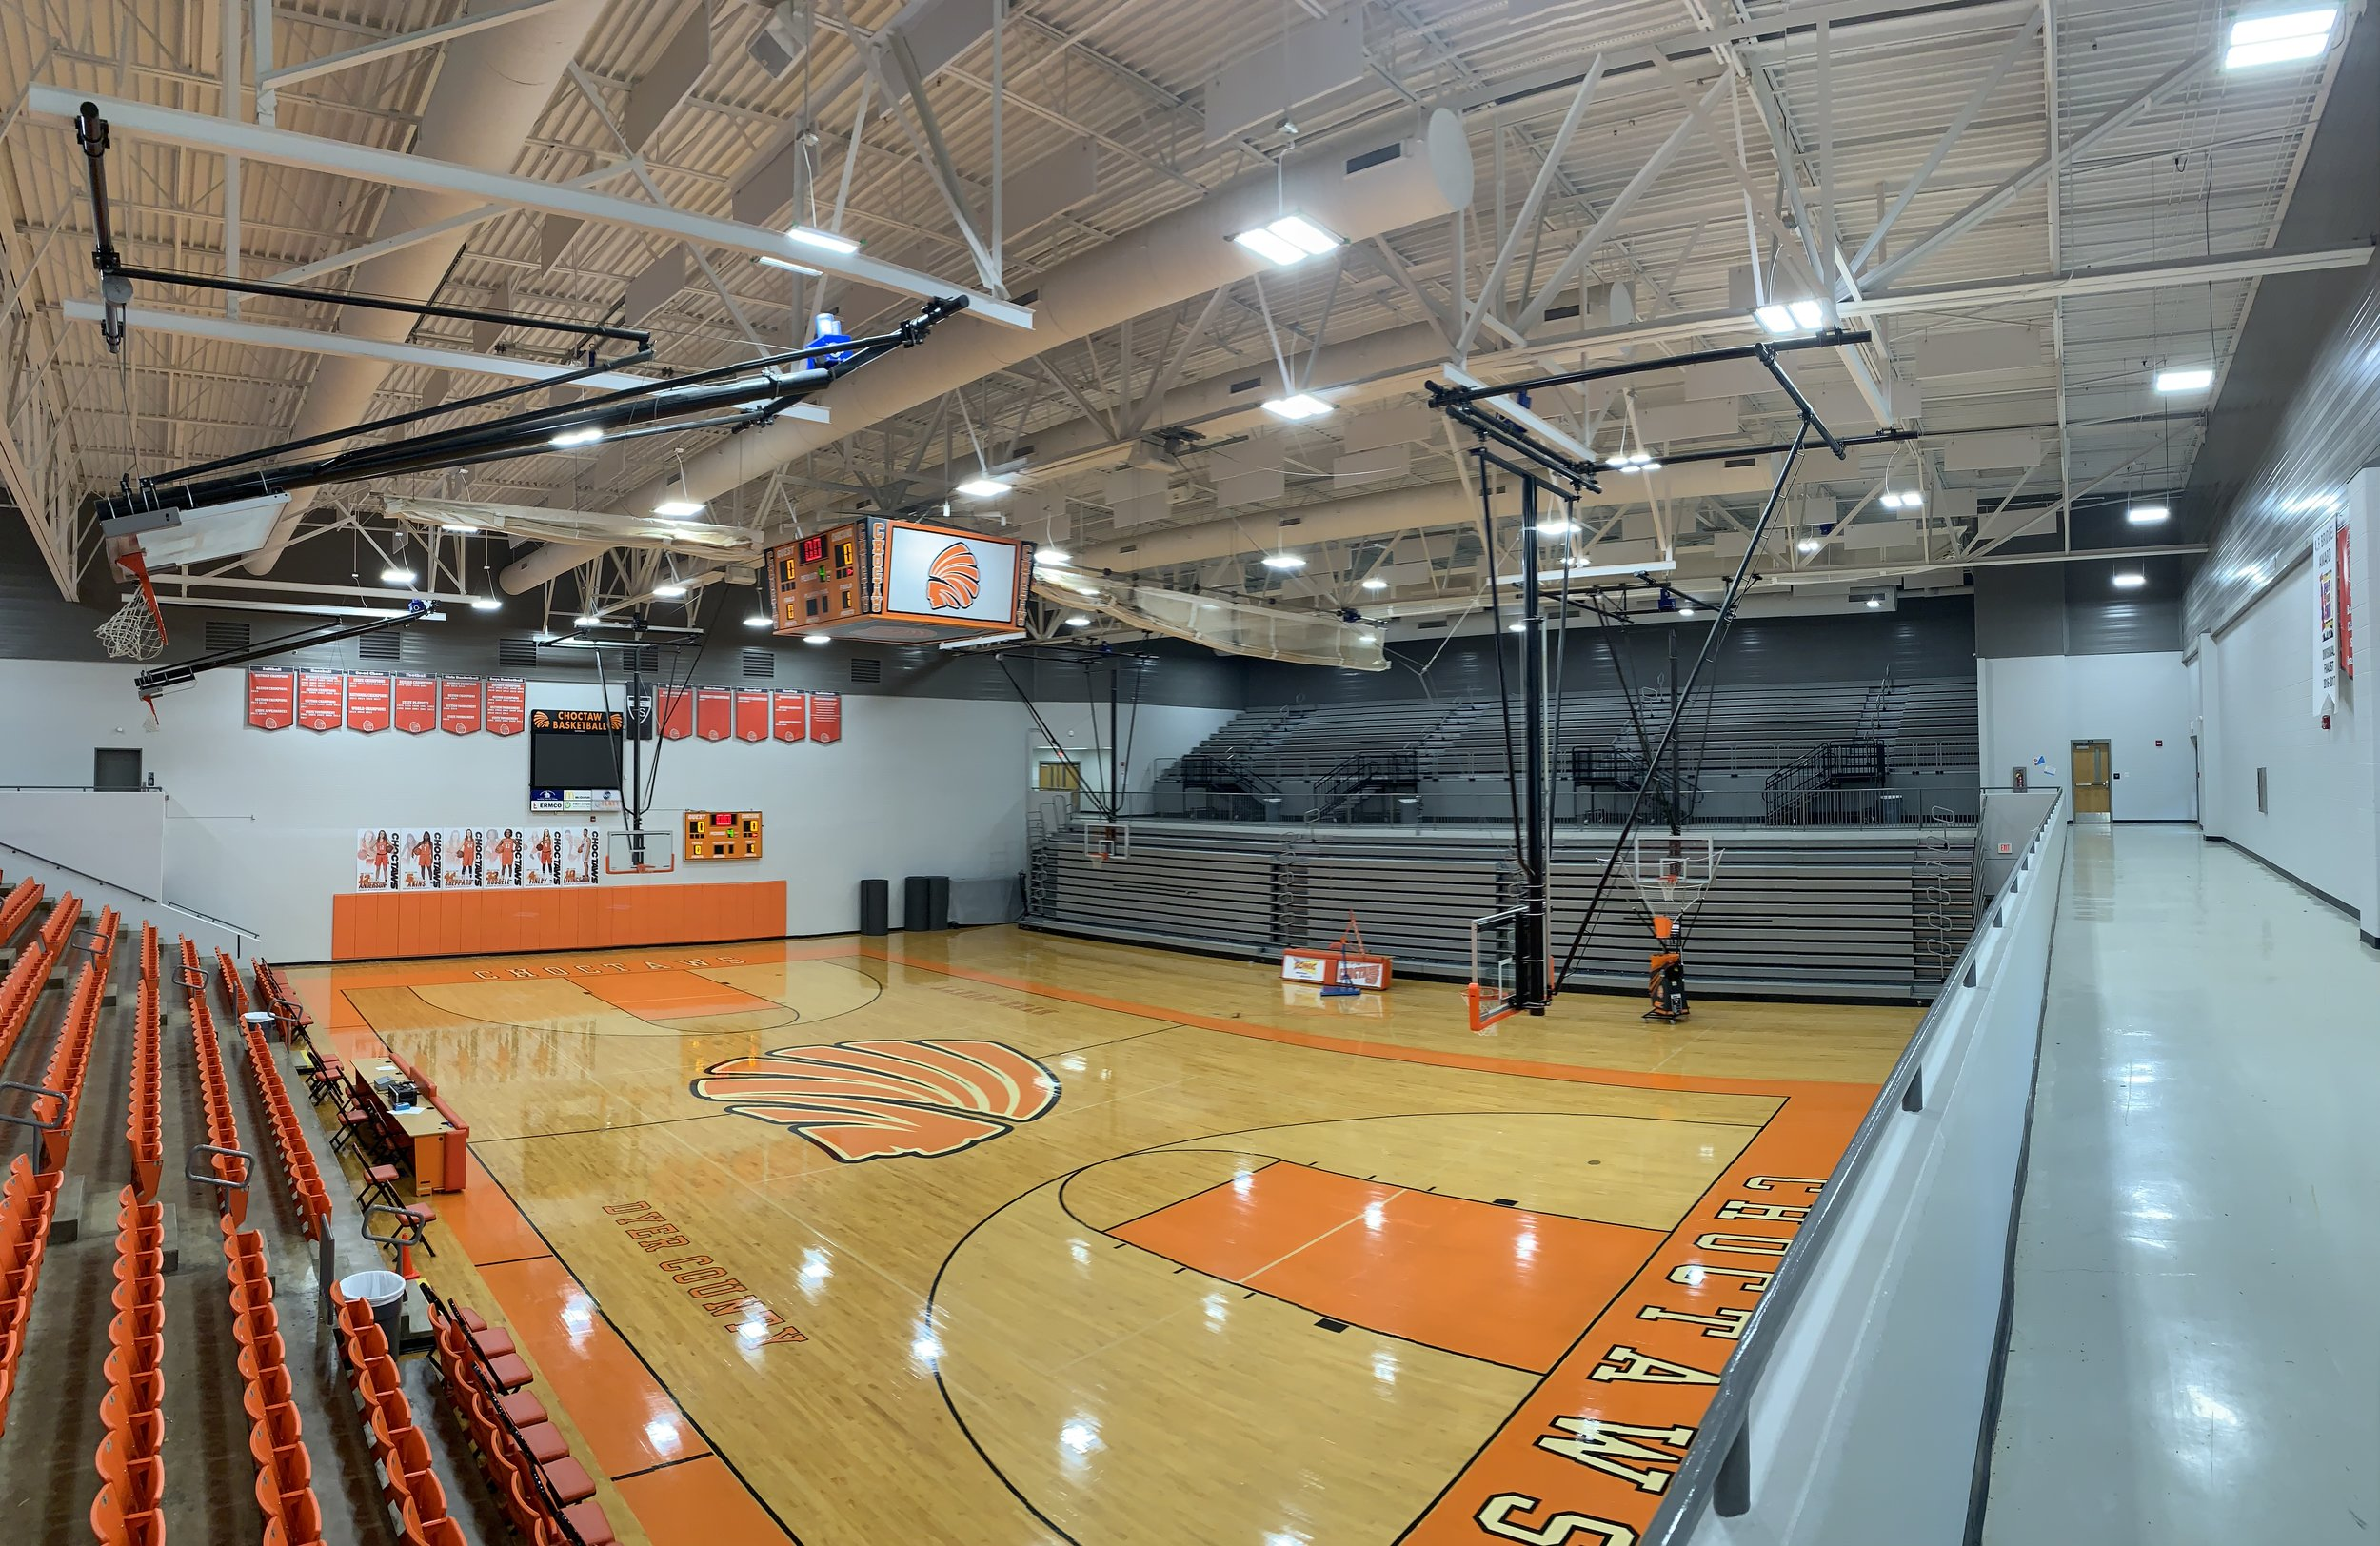 Educational: Dyer County High School Gym Re-light  Architect: MNB Architects  Photography: HNA Engineering